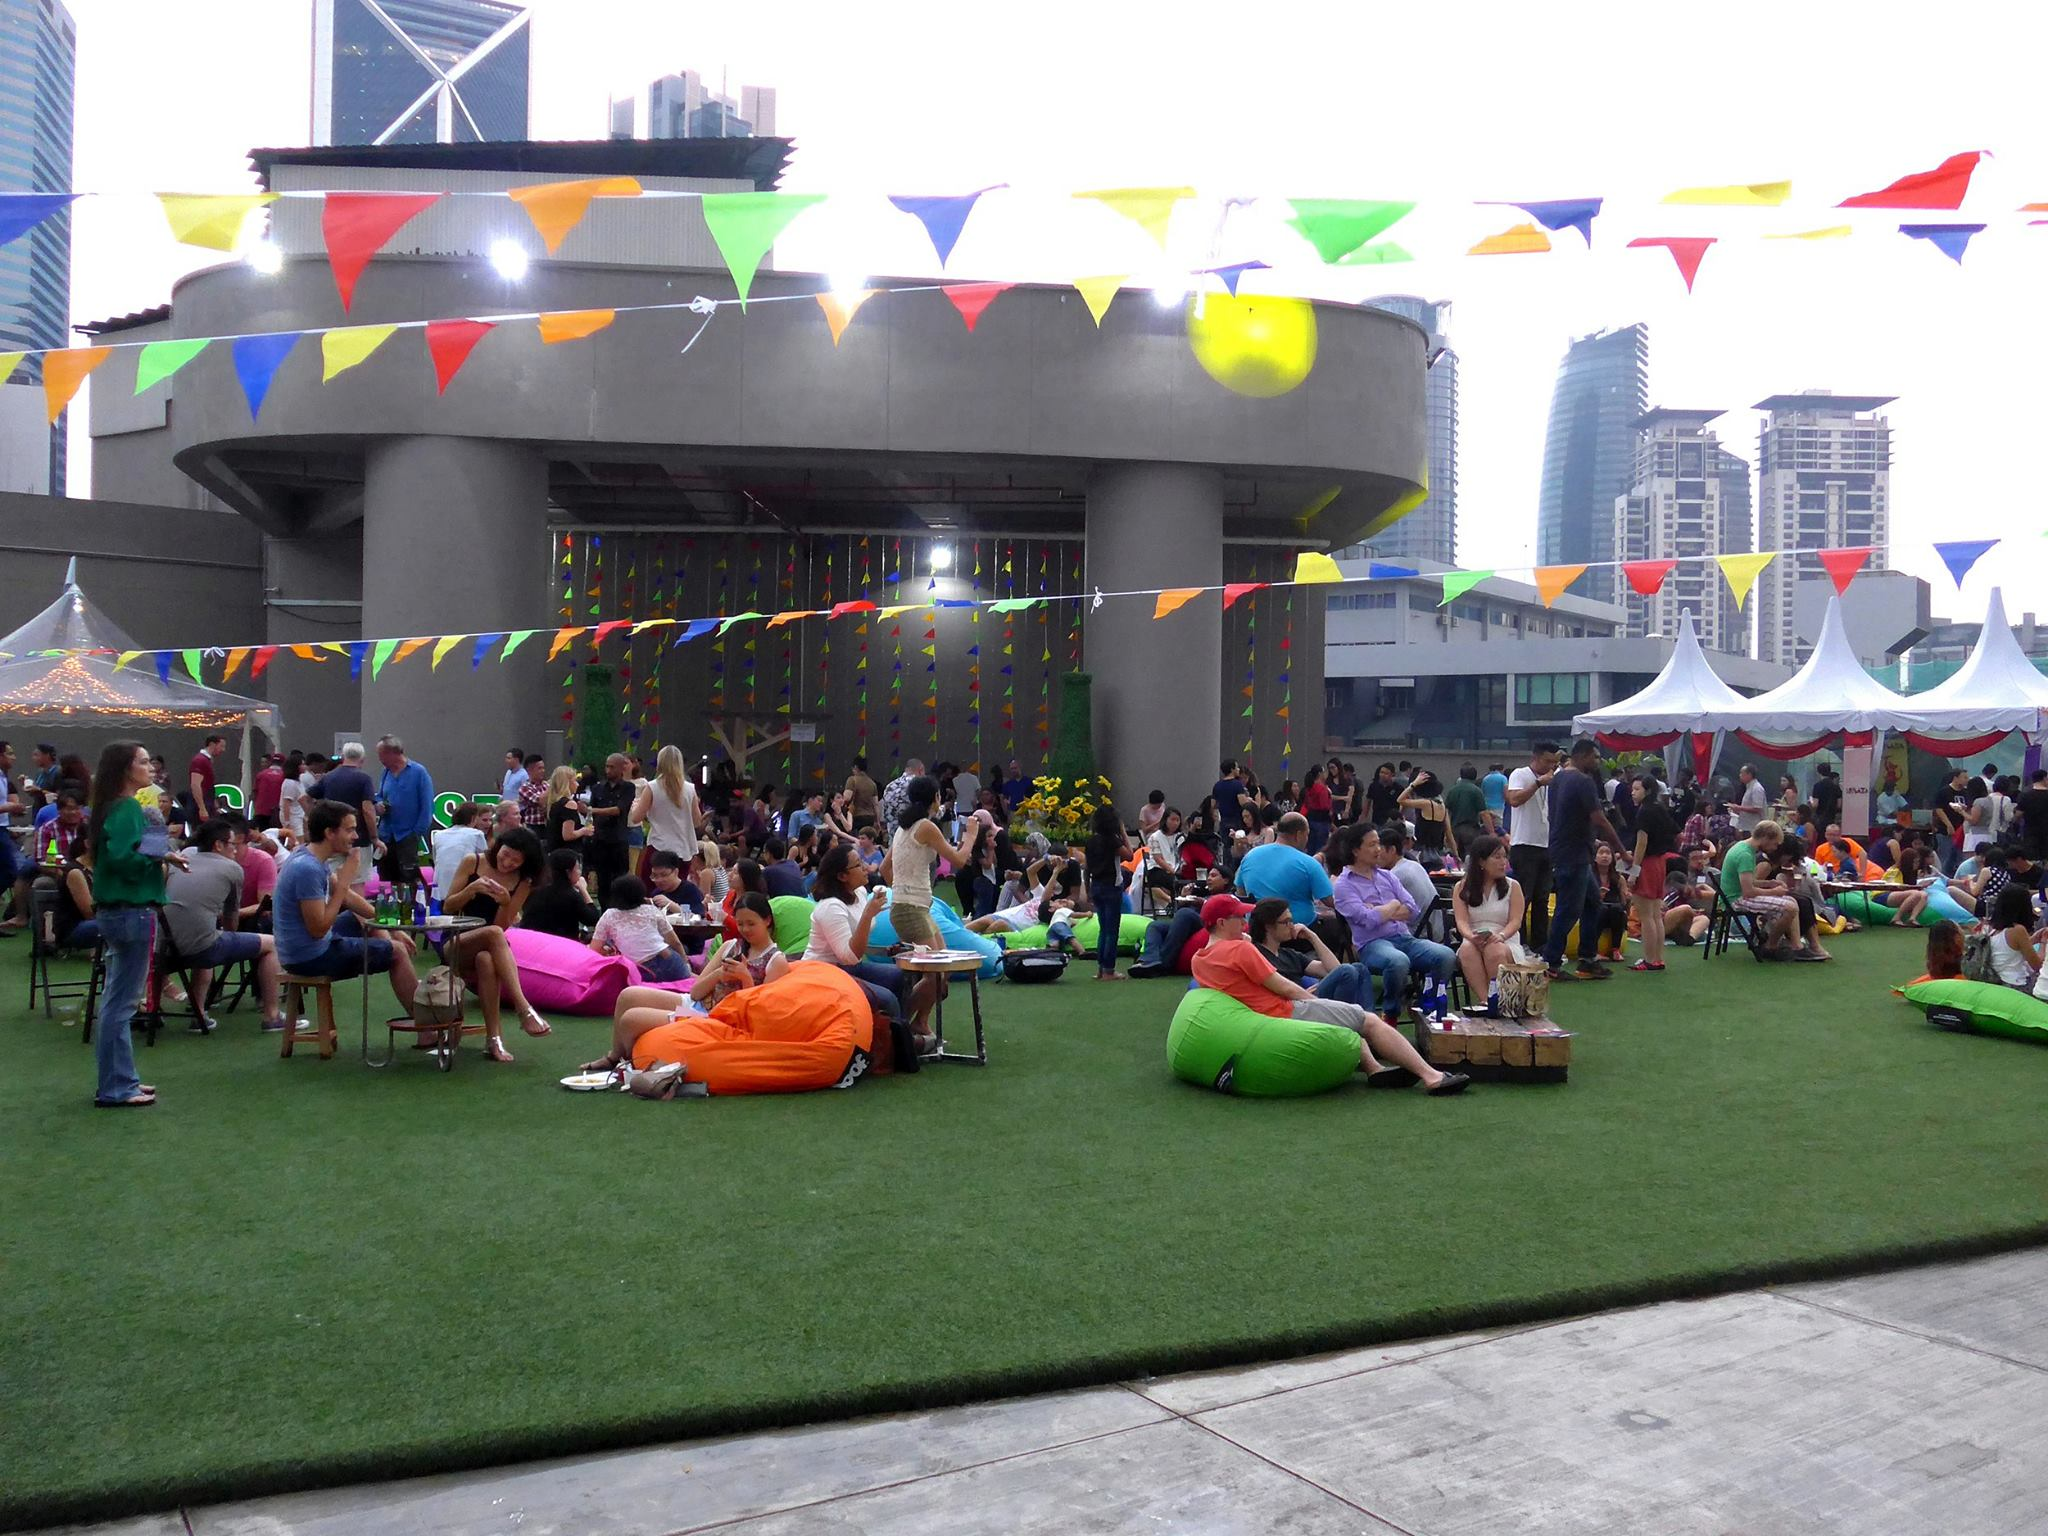 The Event Was A Very Chilled Out Affair With Bean Bags Strewn On Grass